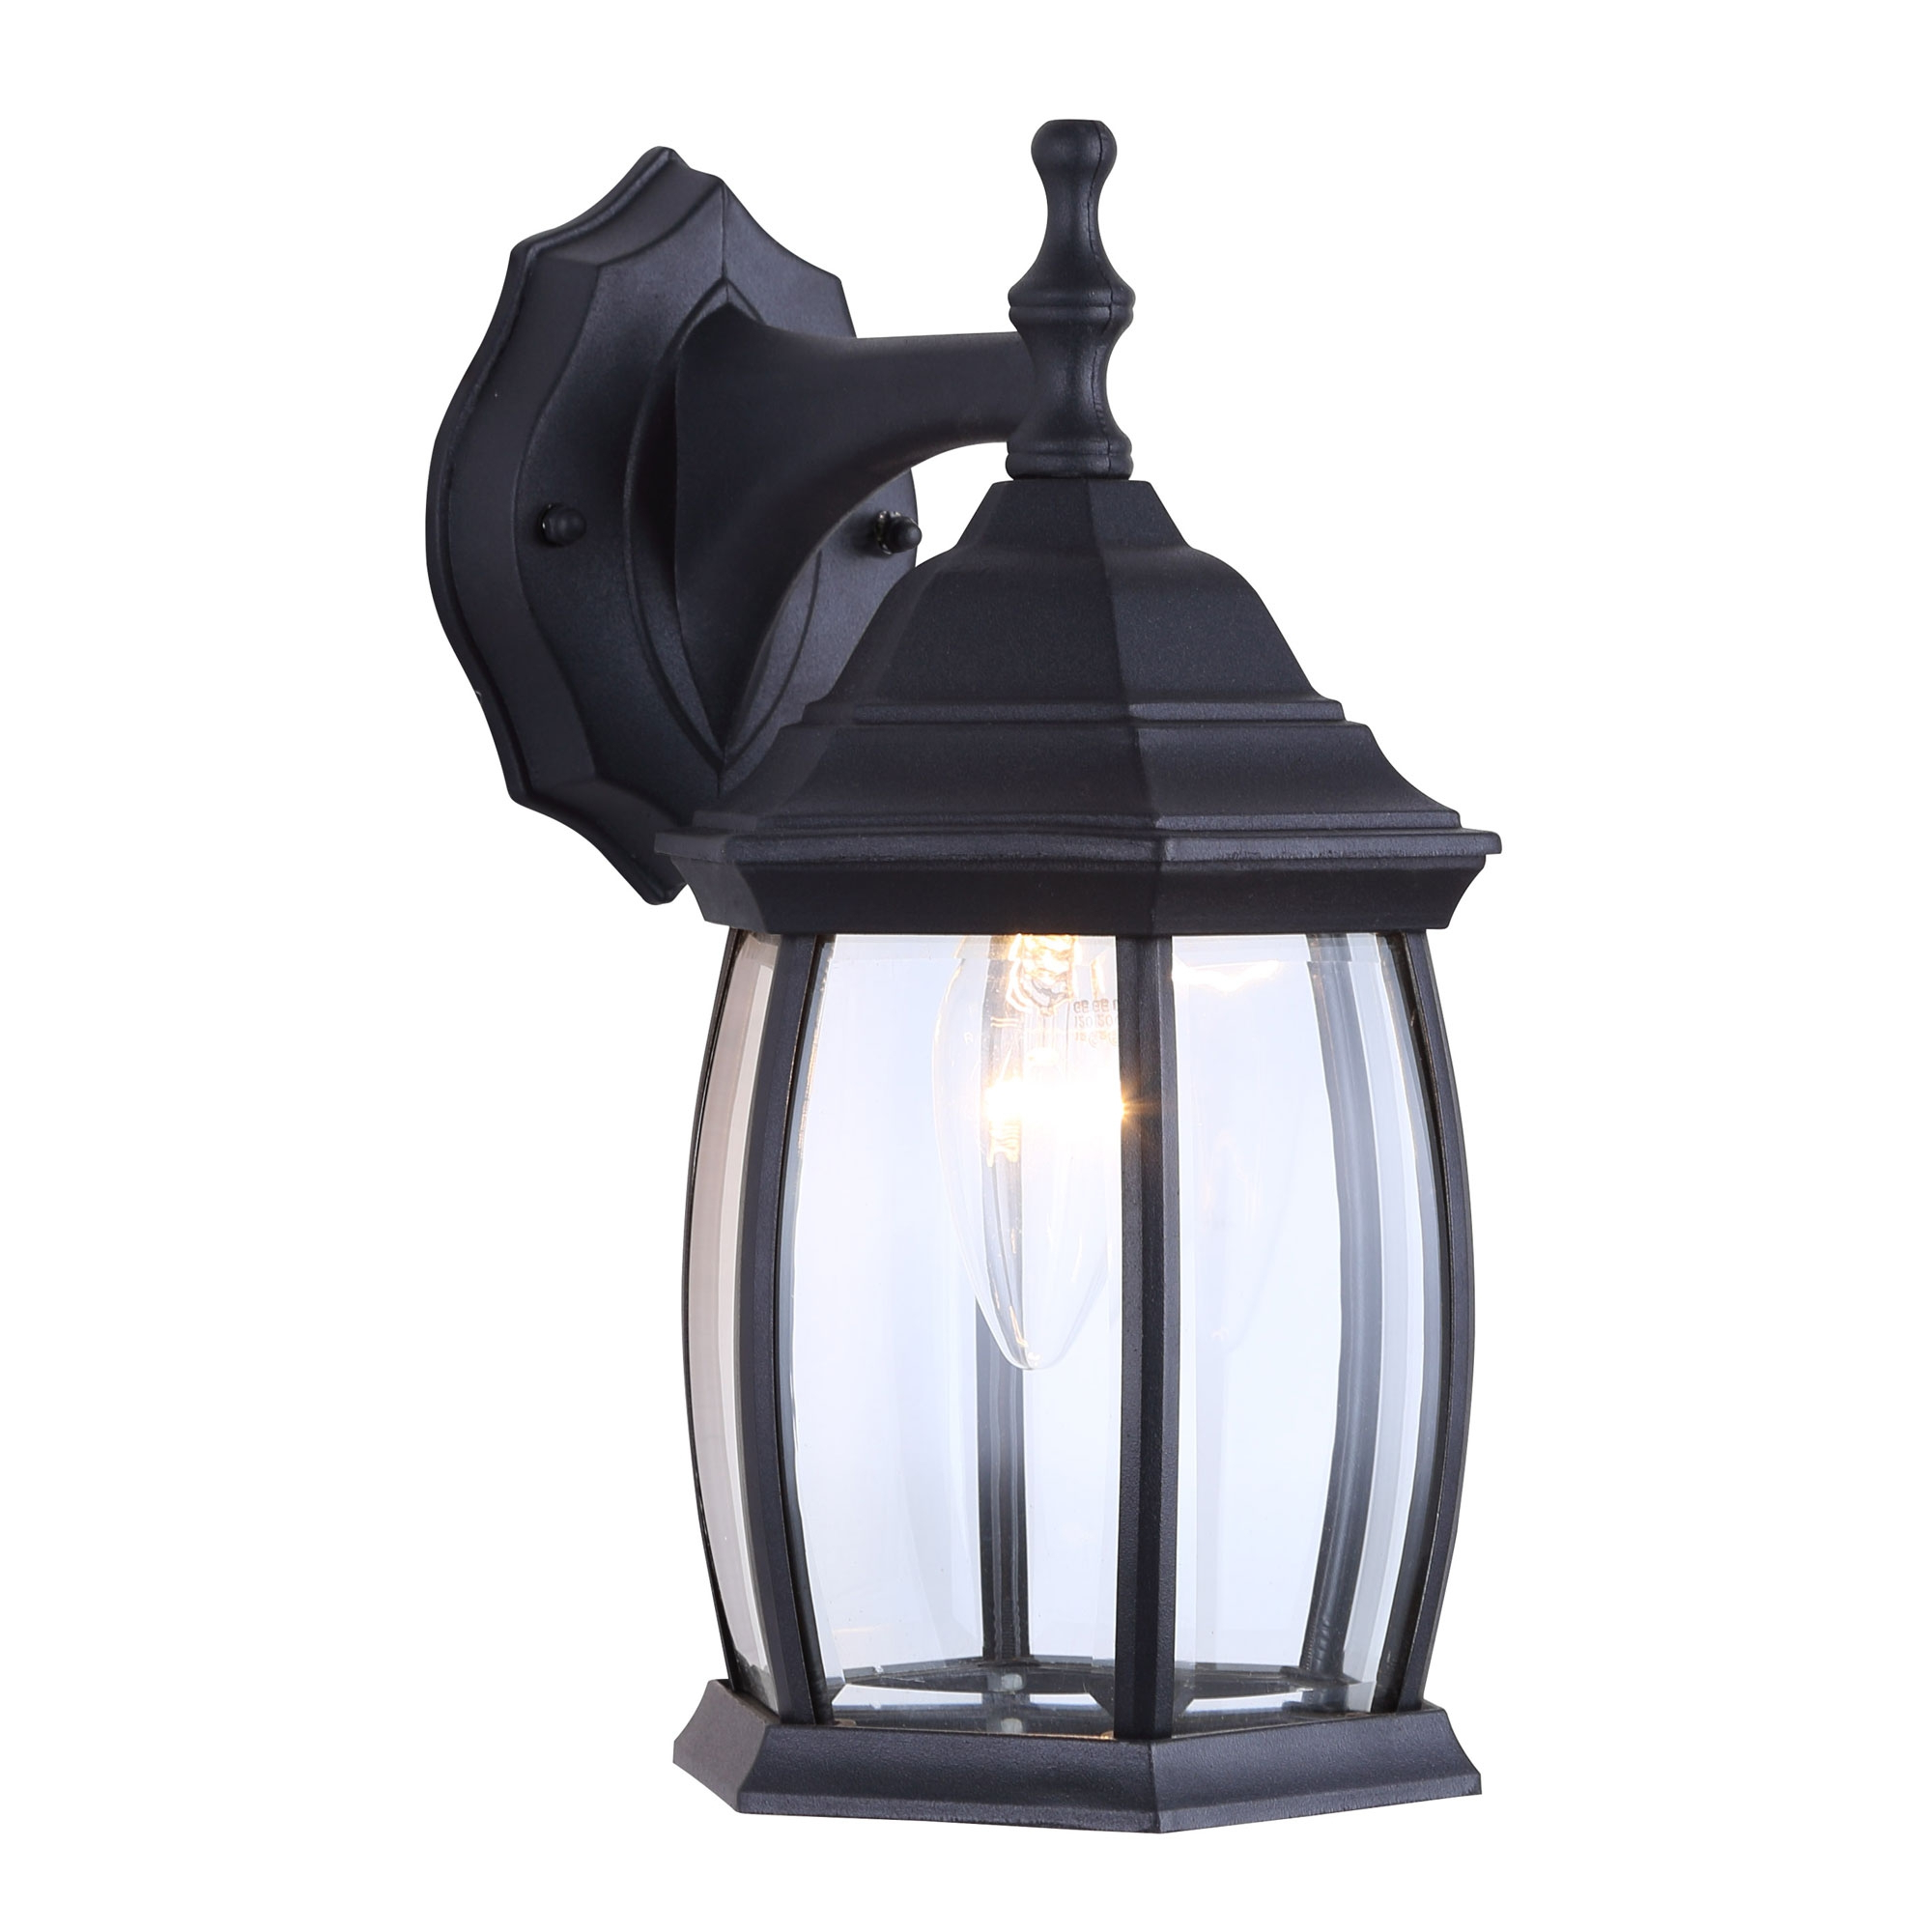 Famous One Light Outdoor Exterior Lantern Light Fixture Wall Intended For Merild Textured Black Wall Lanterns (View 4 of 15)